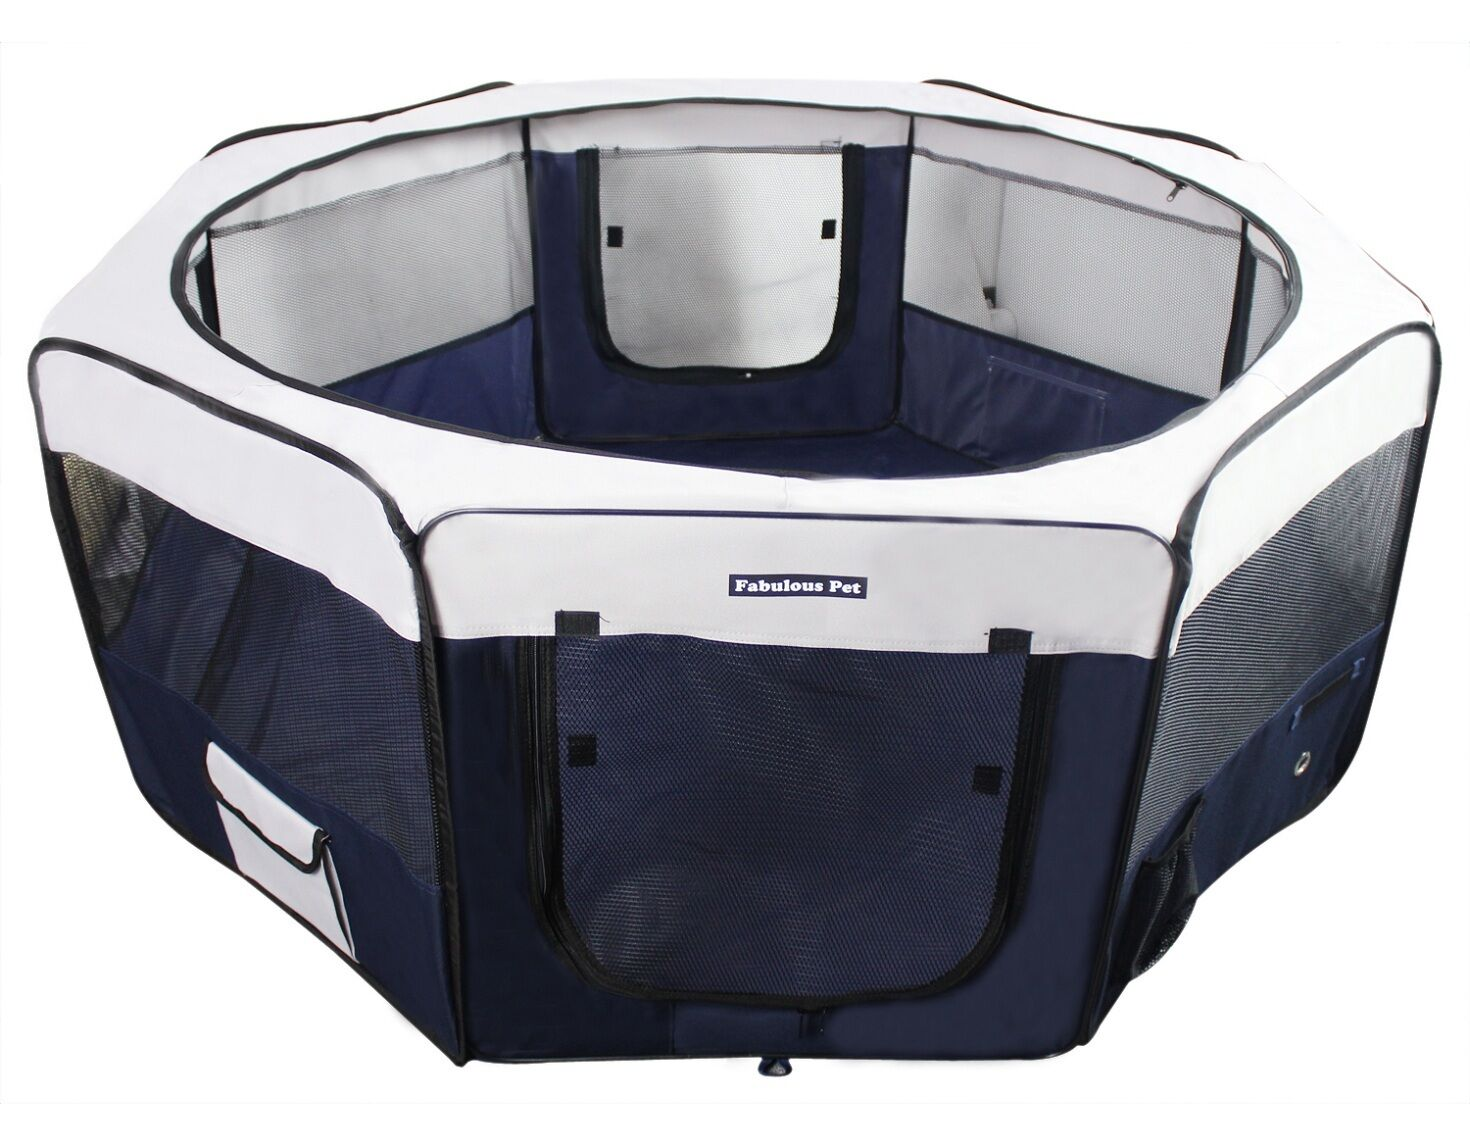 45  Portable Puppy Pet Dog Soft Tent Playpen Folding Crate Pen New - Navy